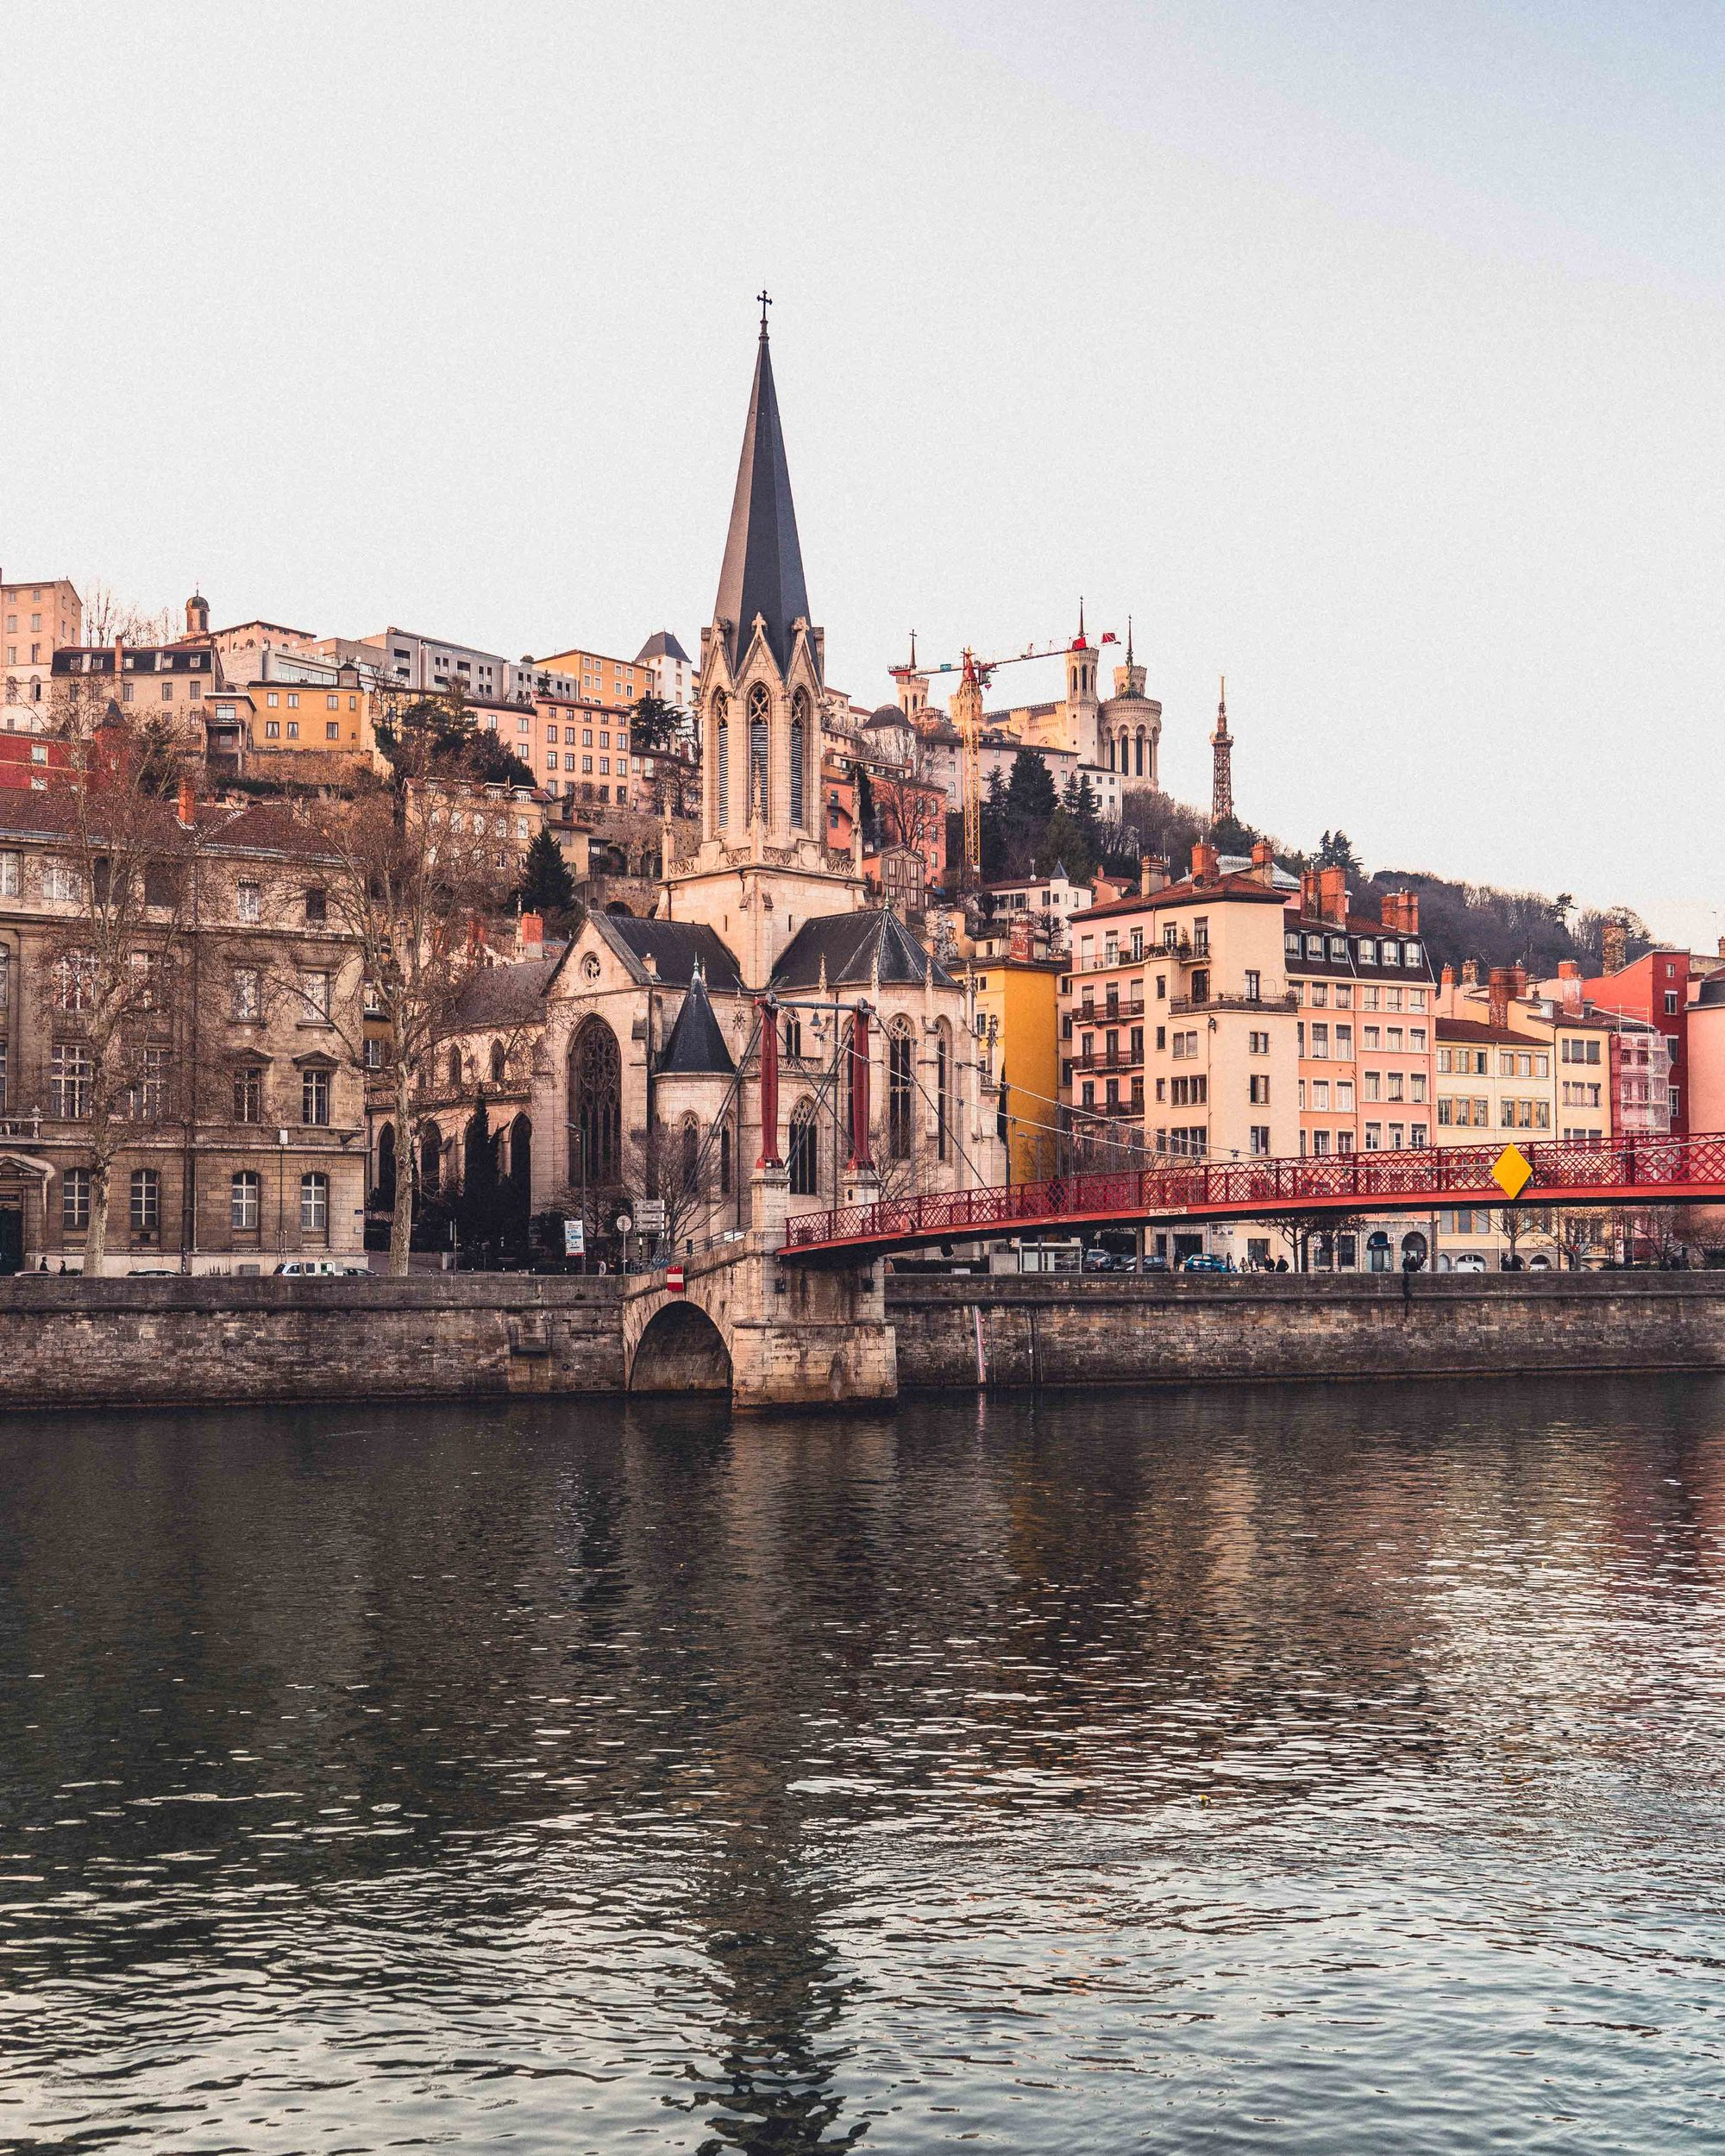 Here's why you need to visit Lyon in the East of France: reasons to go to the foodie capital of France, including murals, the fete des lumieres, architecture, and hidden gems!